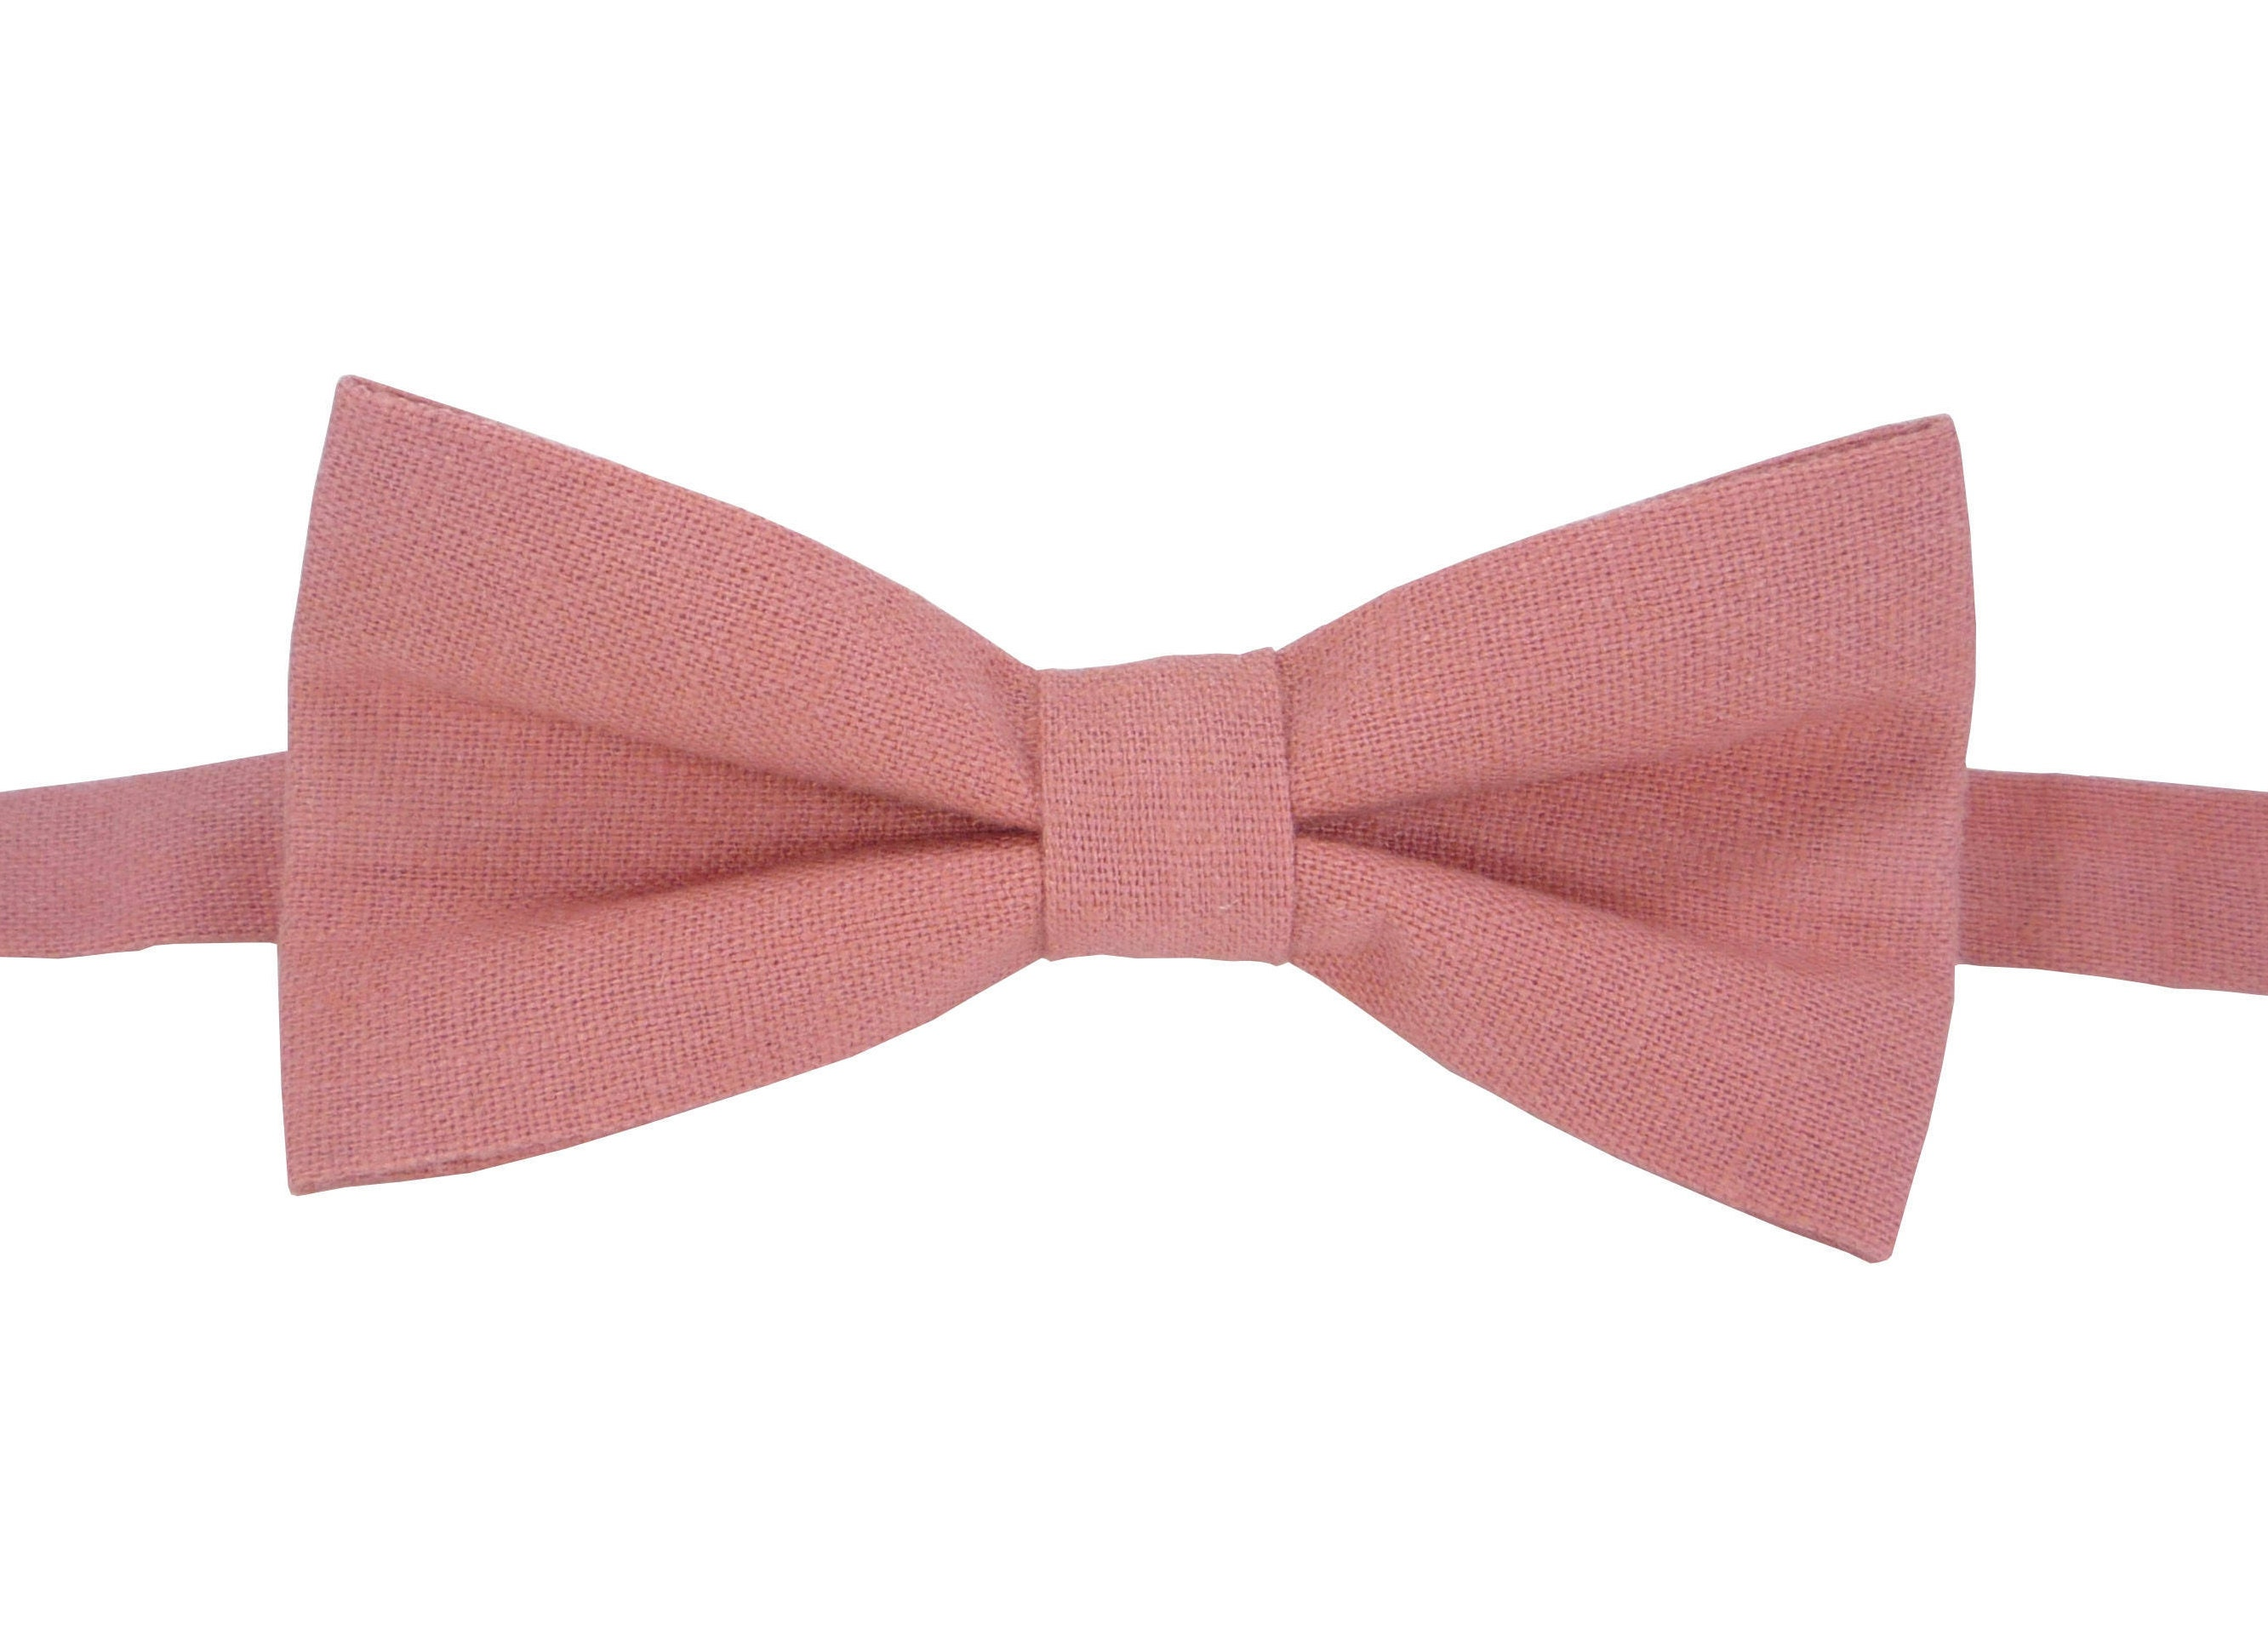 5ab5e745c423 Pink Bow Tie for wedding linen bow tie for men Bow tie pink | Etsy